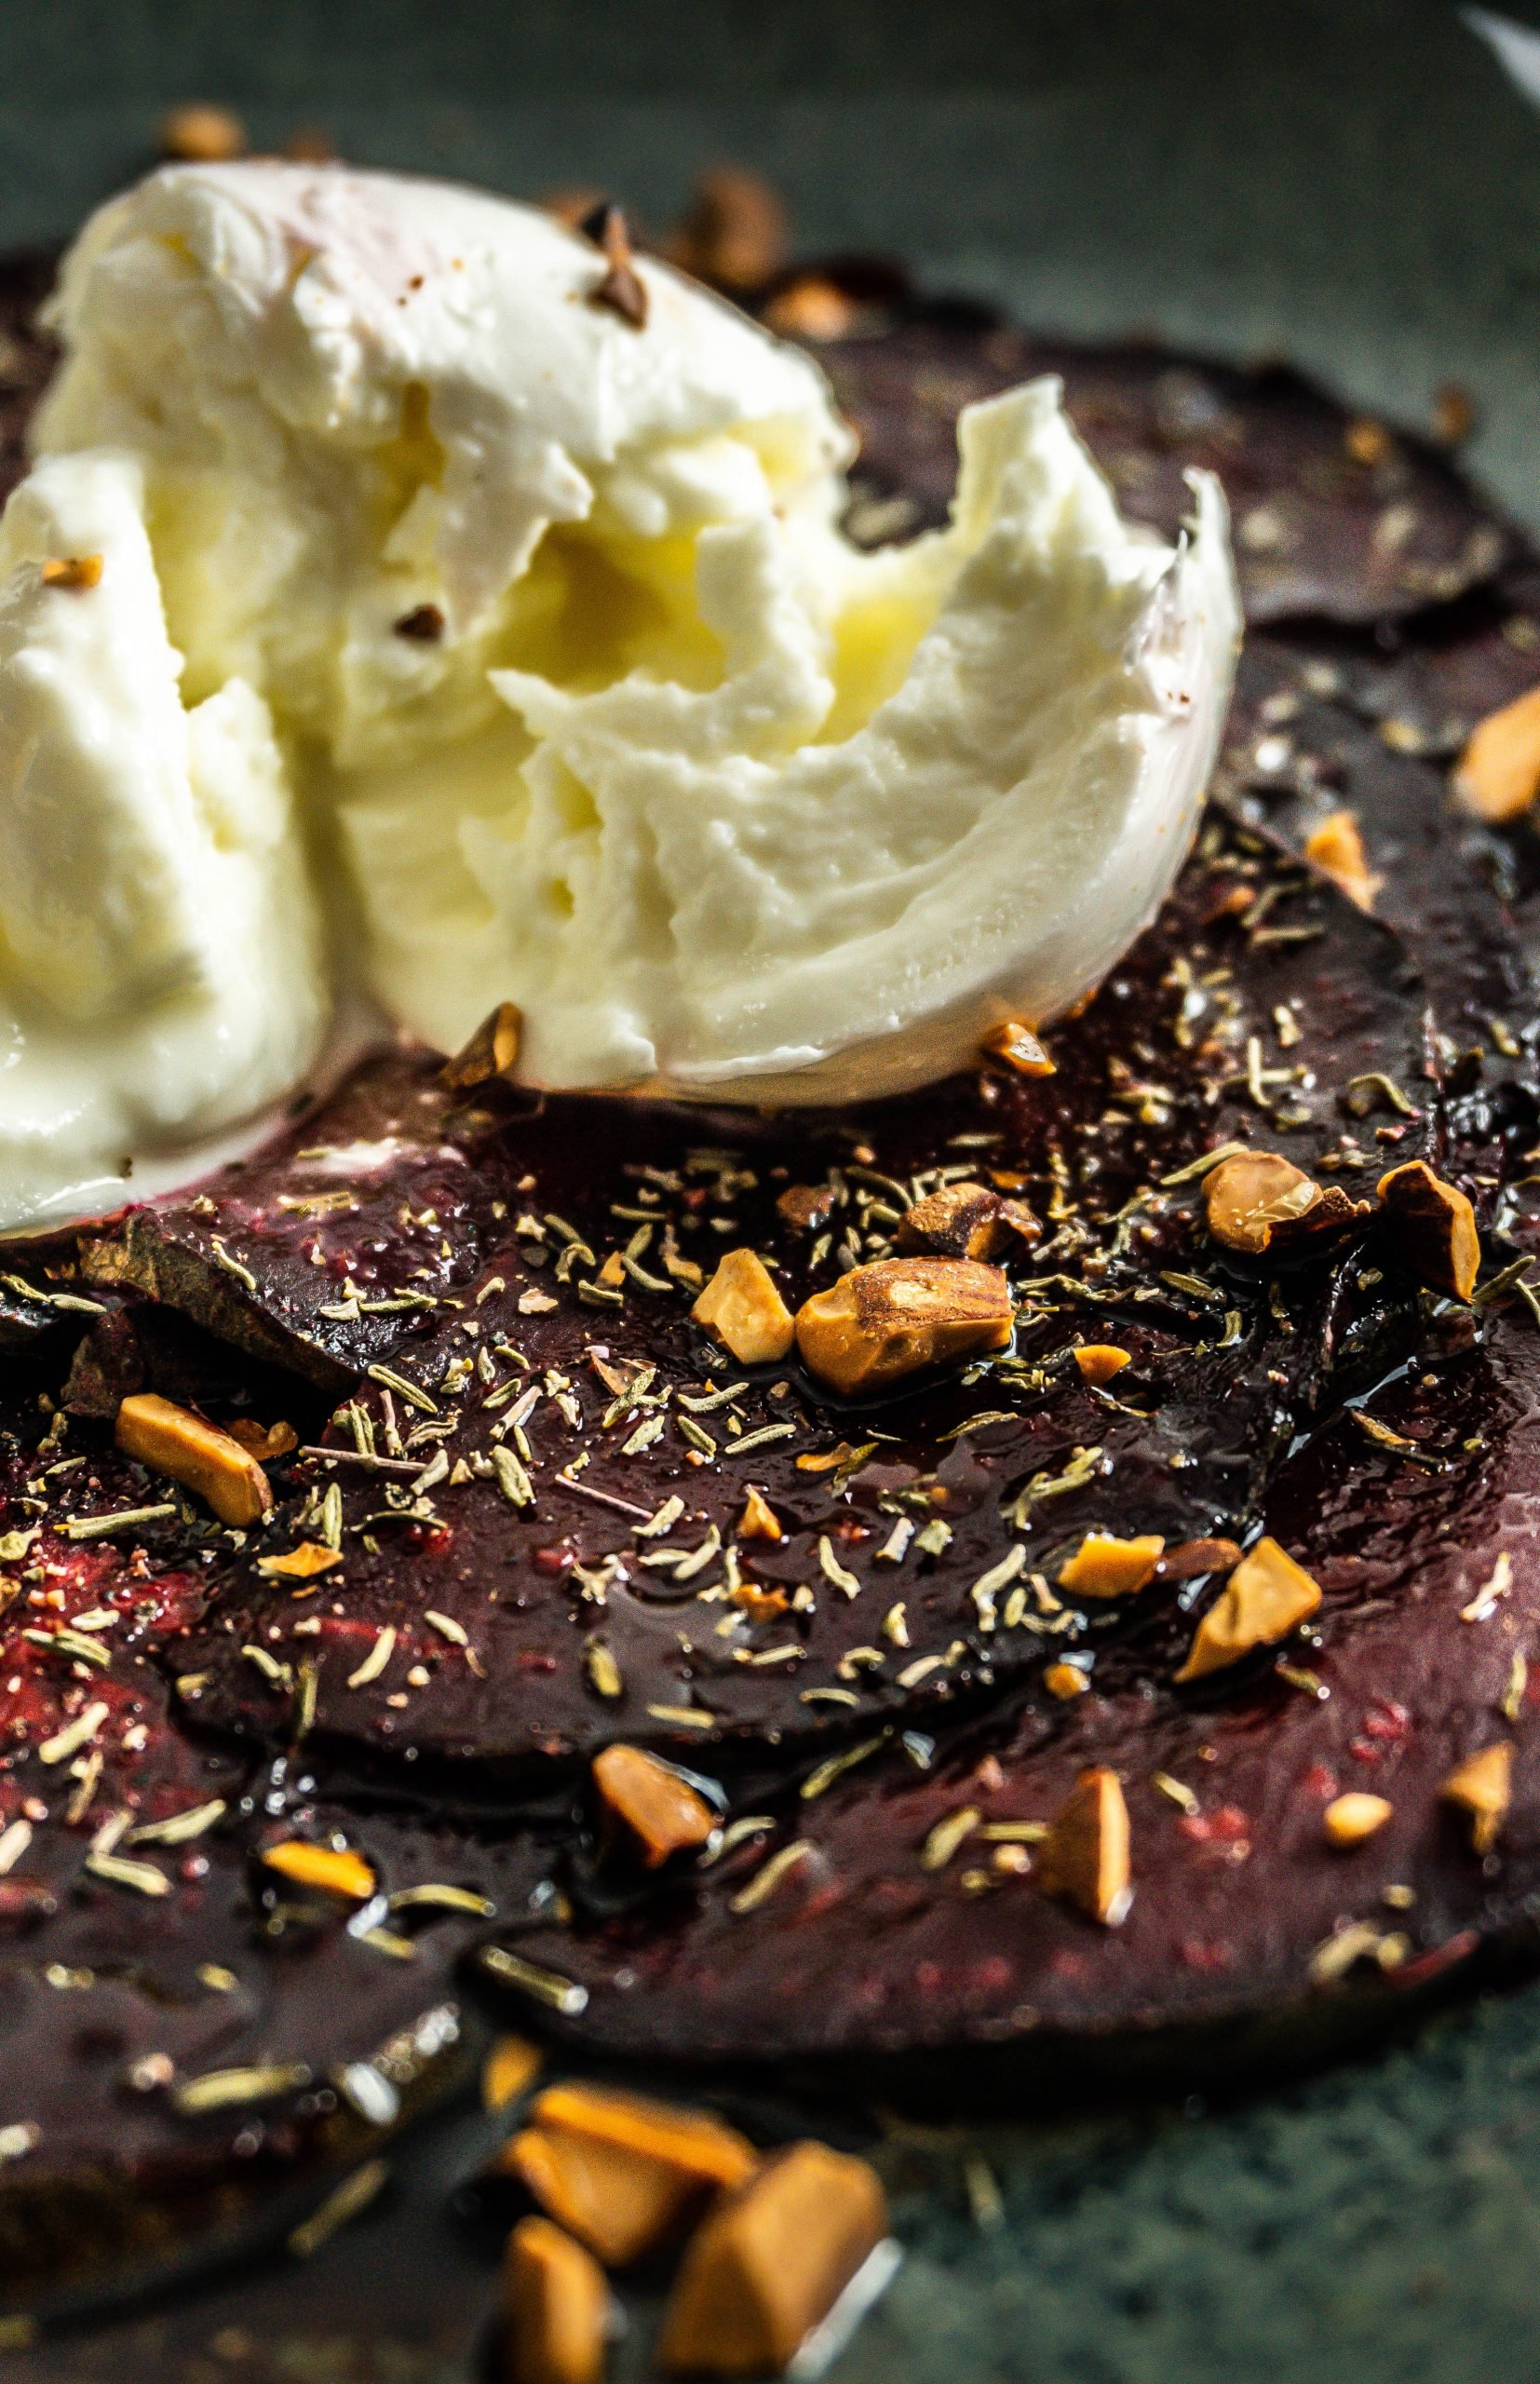 Beetroot Carpaccio with a Burrata split up on top photographed up close